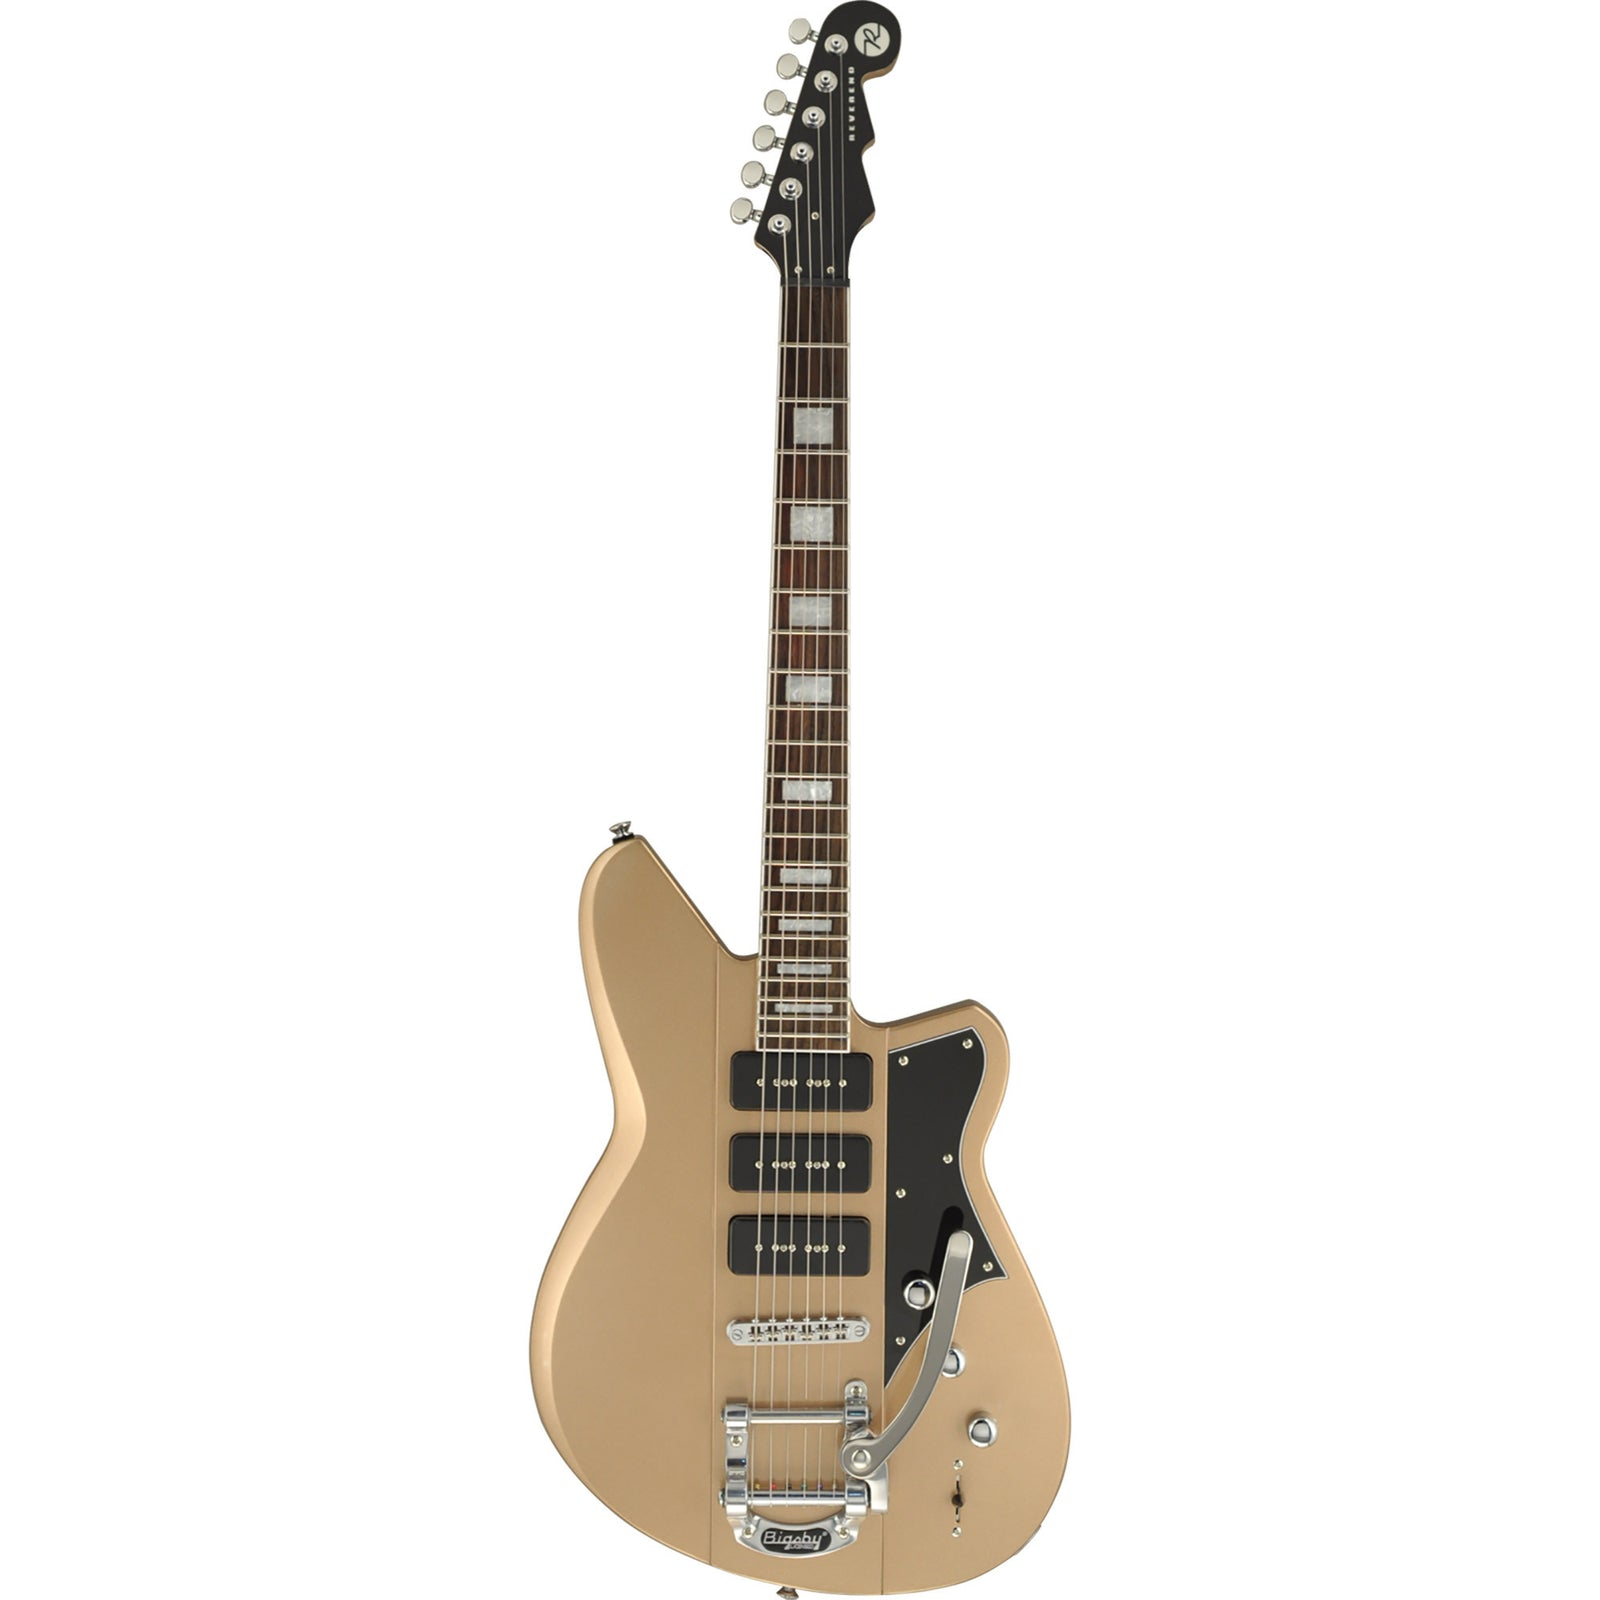 Reverend Warhawk 390 Electric Guitar - Lakeshore Gold